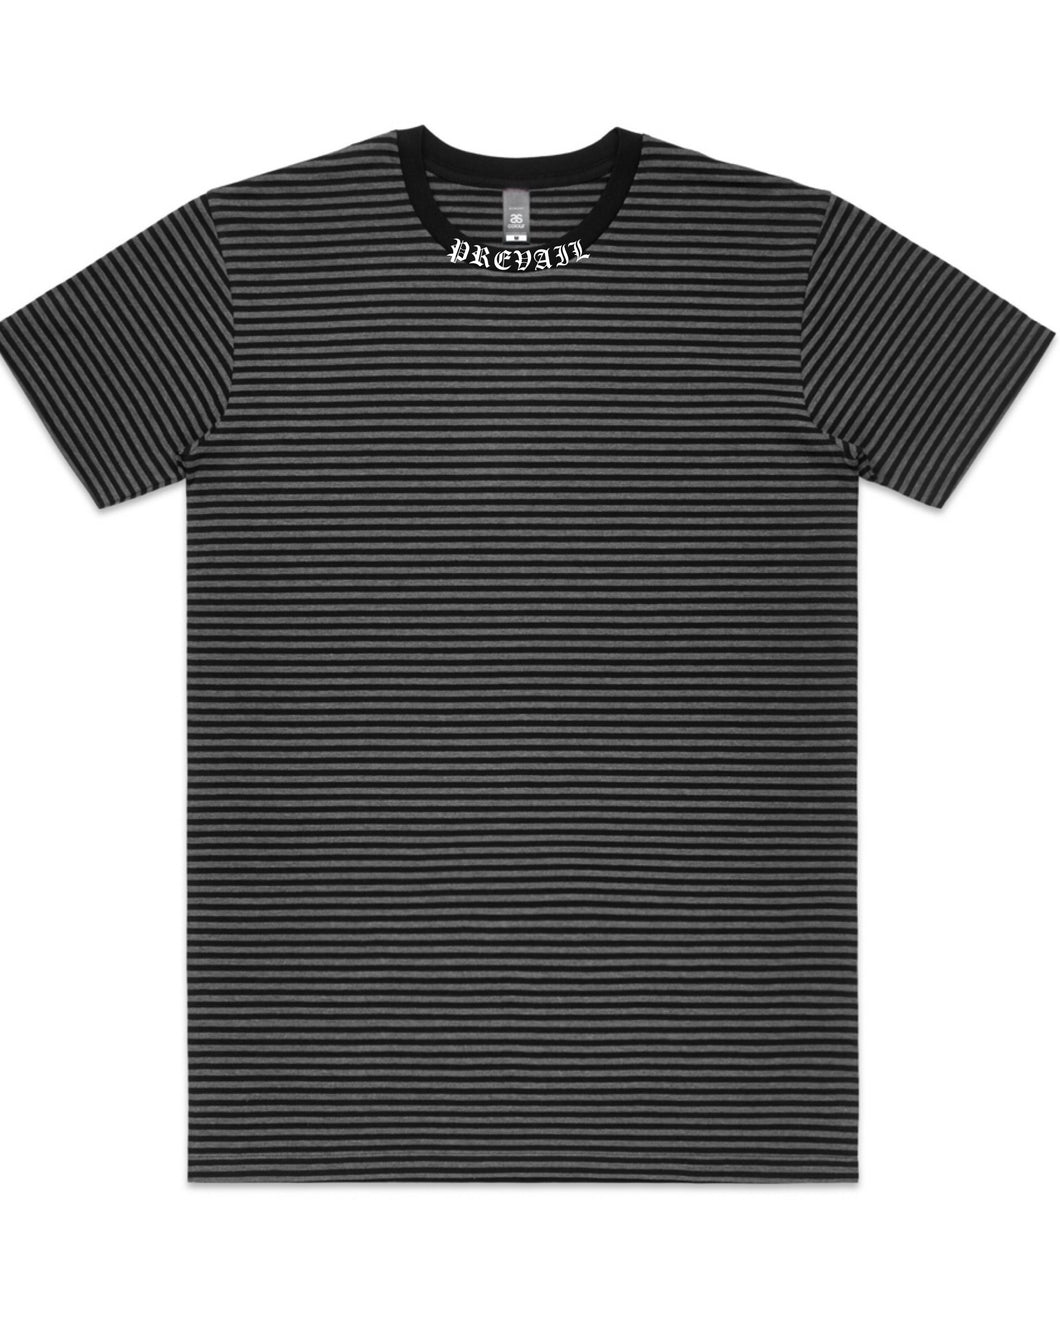 Prevail - Stripe Tee